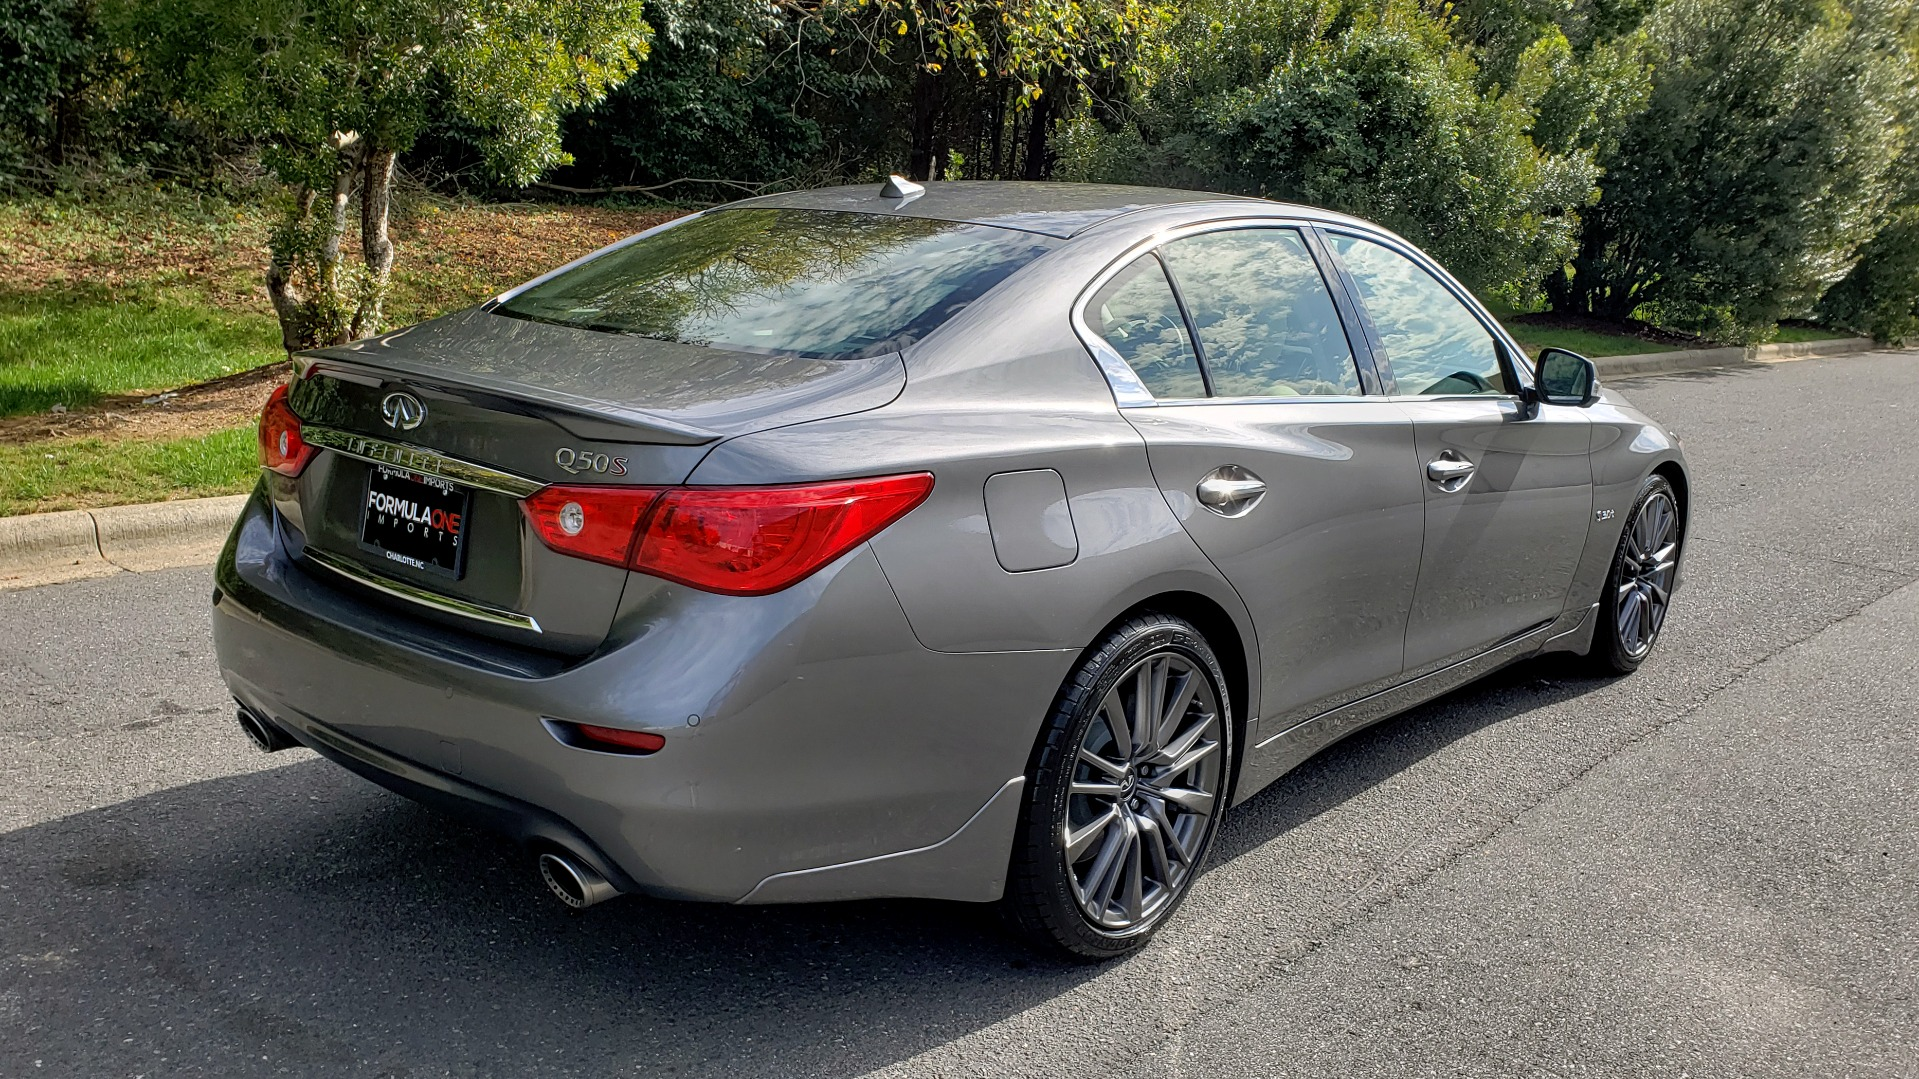 Used 2016 INFINITI Q50 3.0T RED SPORT 400 / NAV / PREM PLUS / BLIND SPOT / REARVIEW for sale $28,495 at Formula Imports in Charlotte NC 28227 6